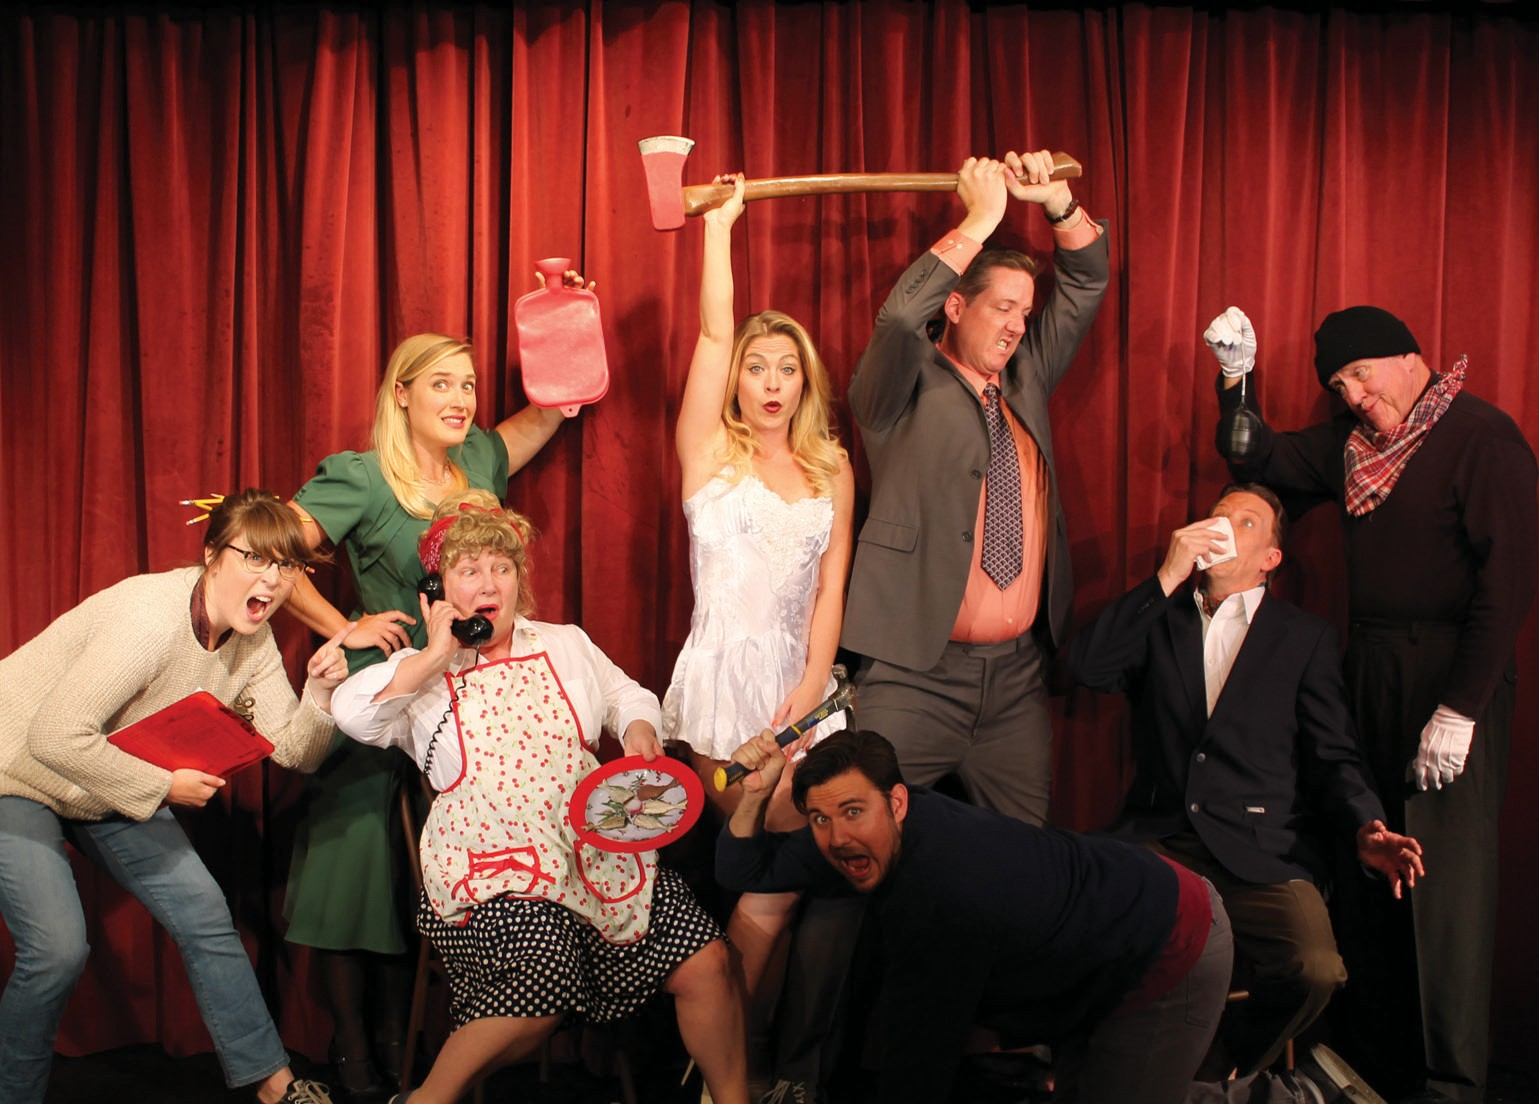 The Noises Off cast at Welk Resort Theater.